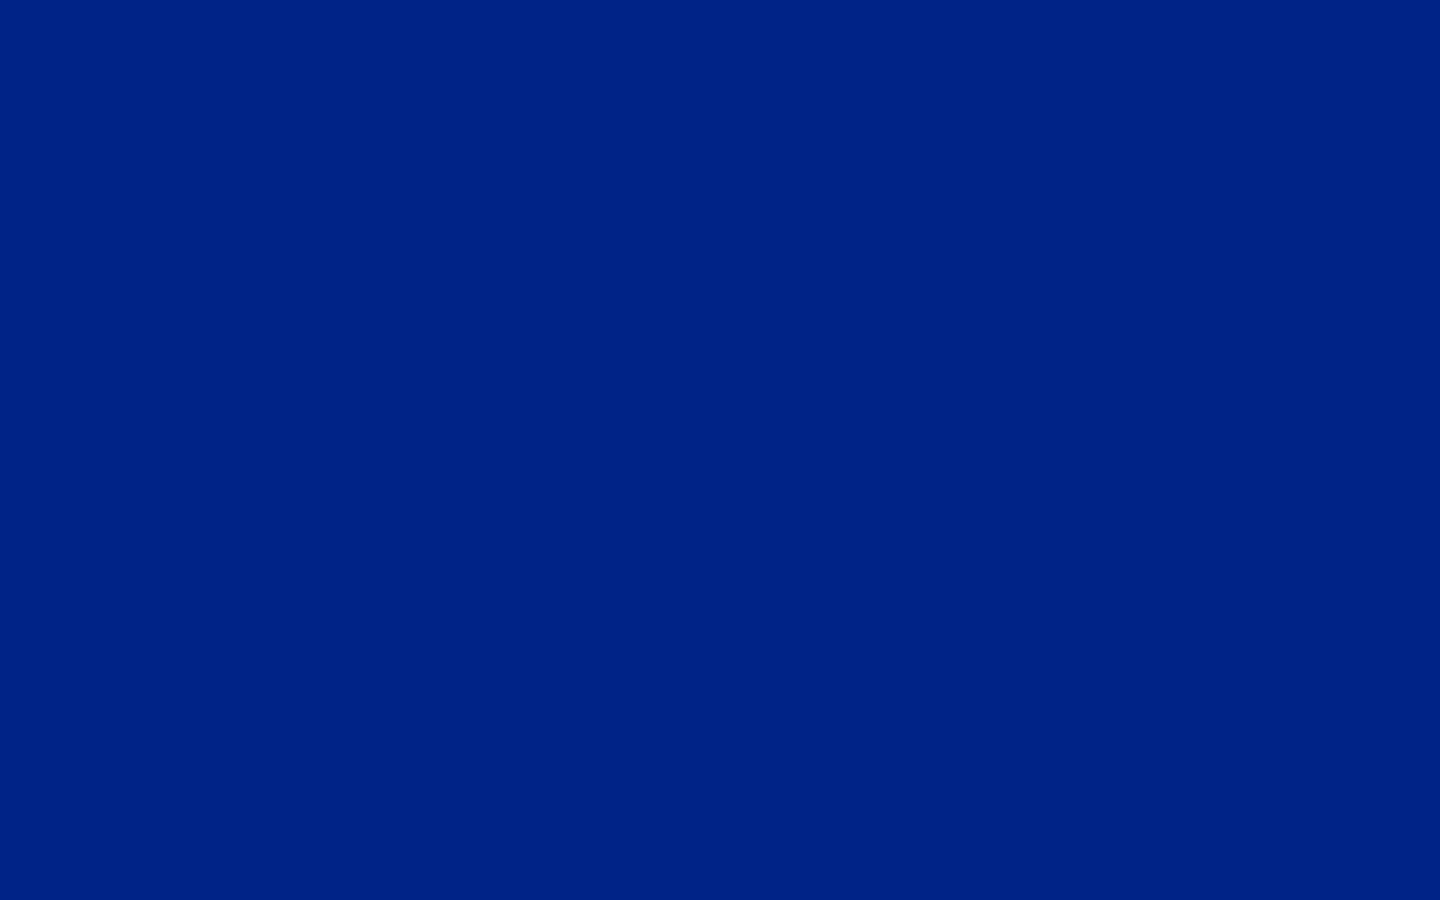 1440x900 Resolution Blue Solid Color Background